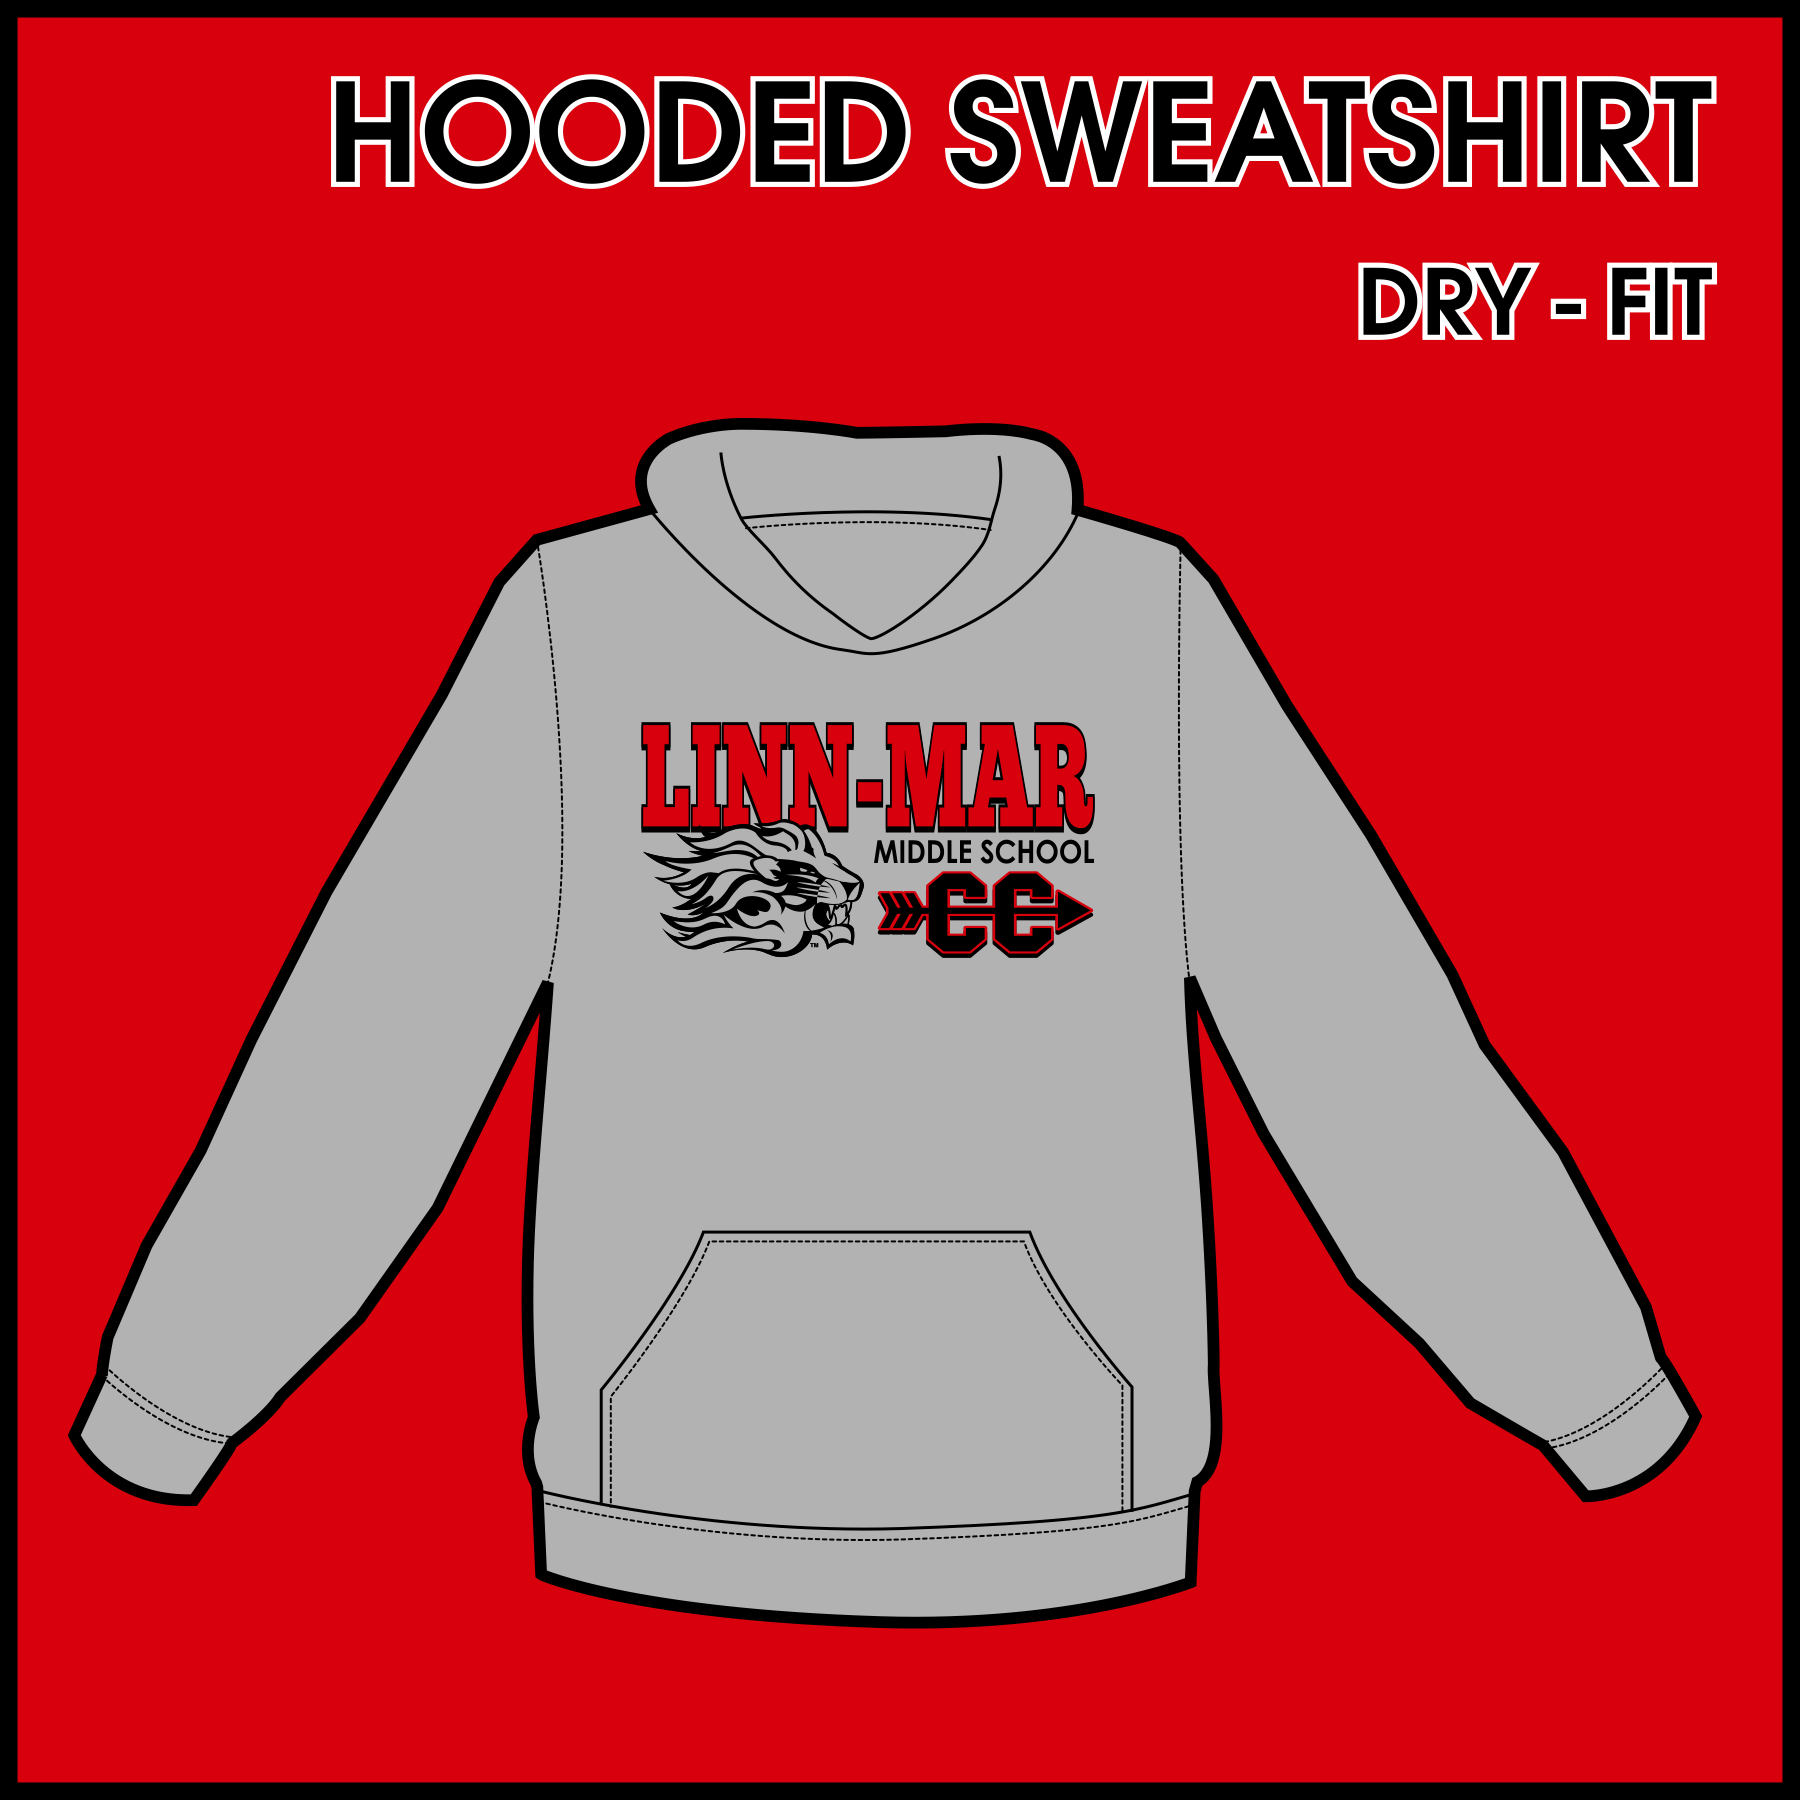 Linn-Mar Middle School Cross Country Dry-Fit Hoodie